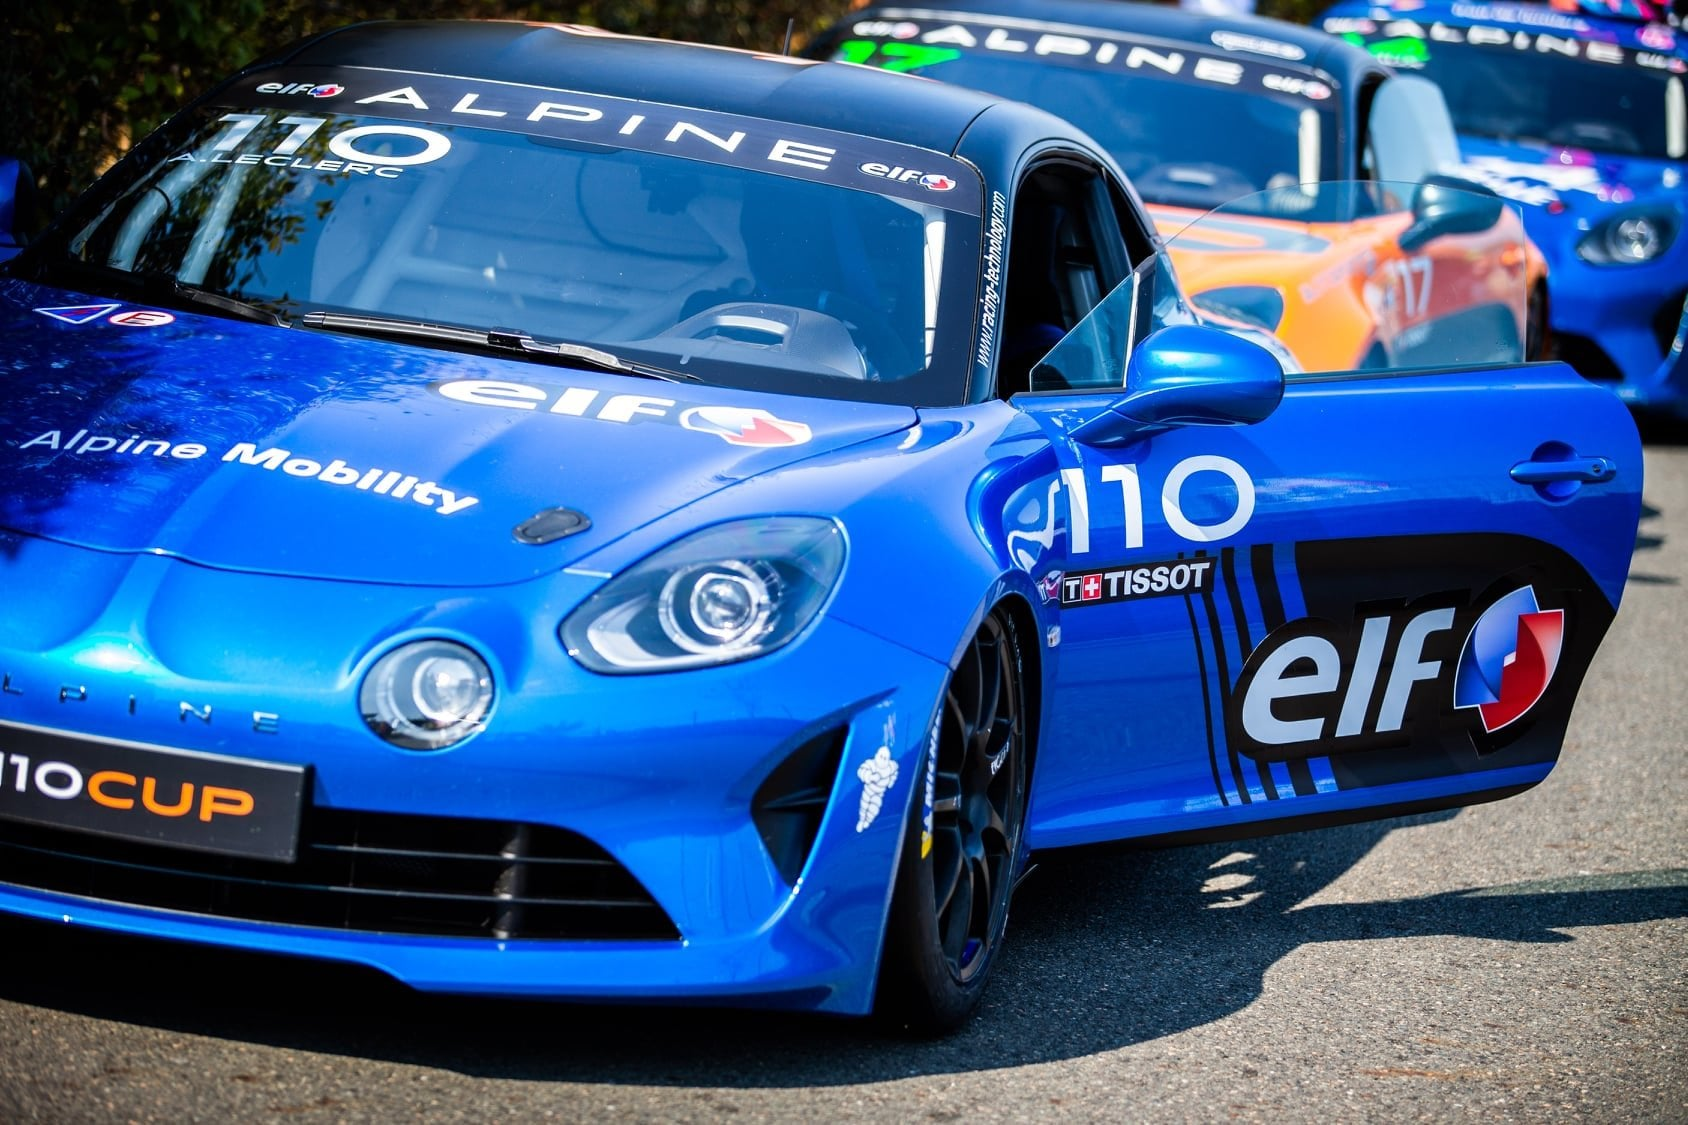 Alpine Elf Europa Cup 2020 Magny Cours A110 Cup 30 | Alpine Elf Europa Cup 2020: Jean-Baptiste Mela triomphe à Magny-Cours